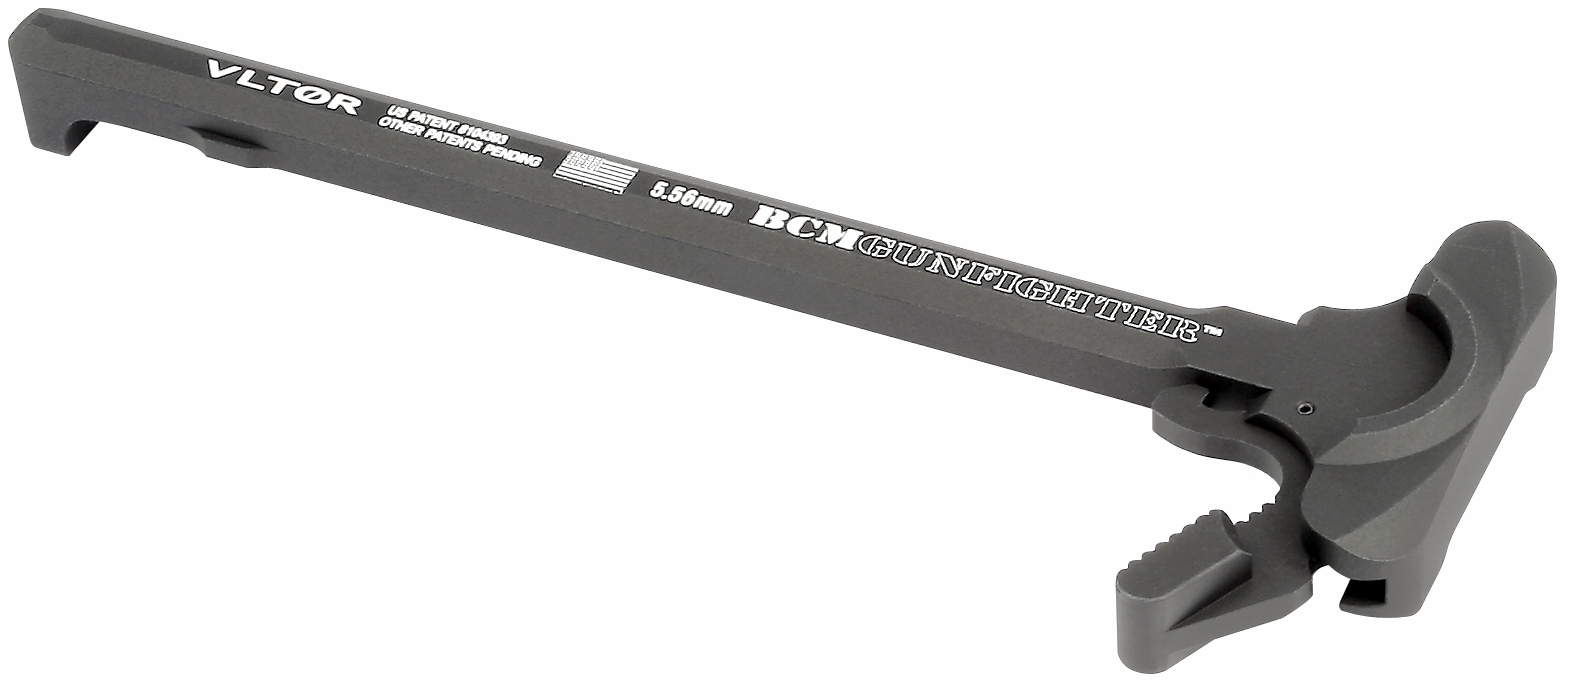 BCM GUNFIGHTER Extended Charging Handle - 5.56